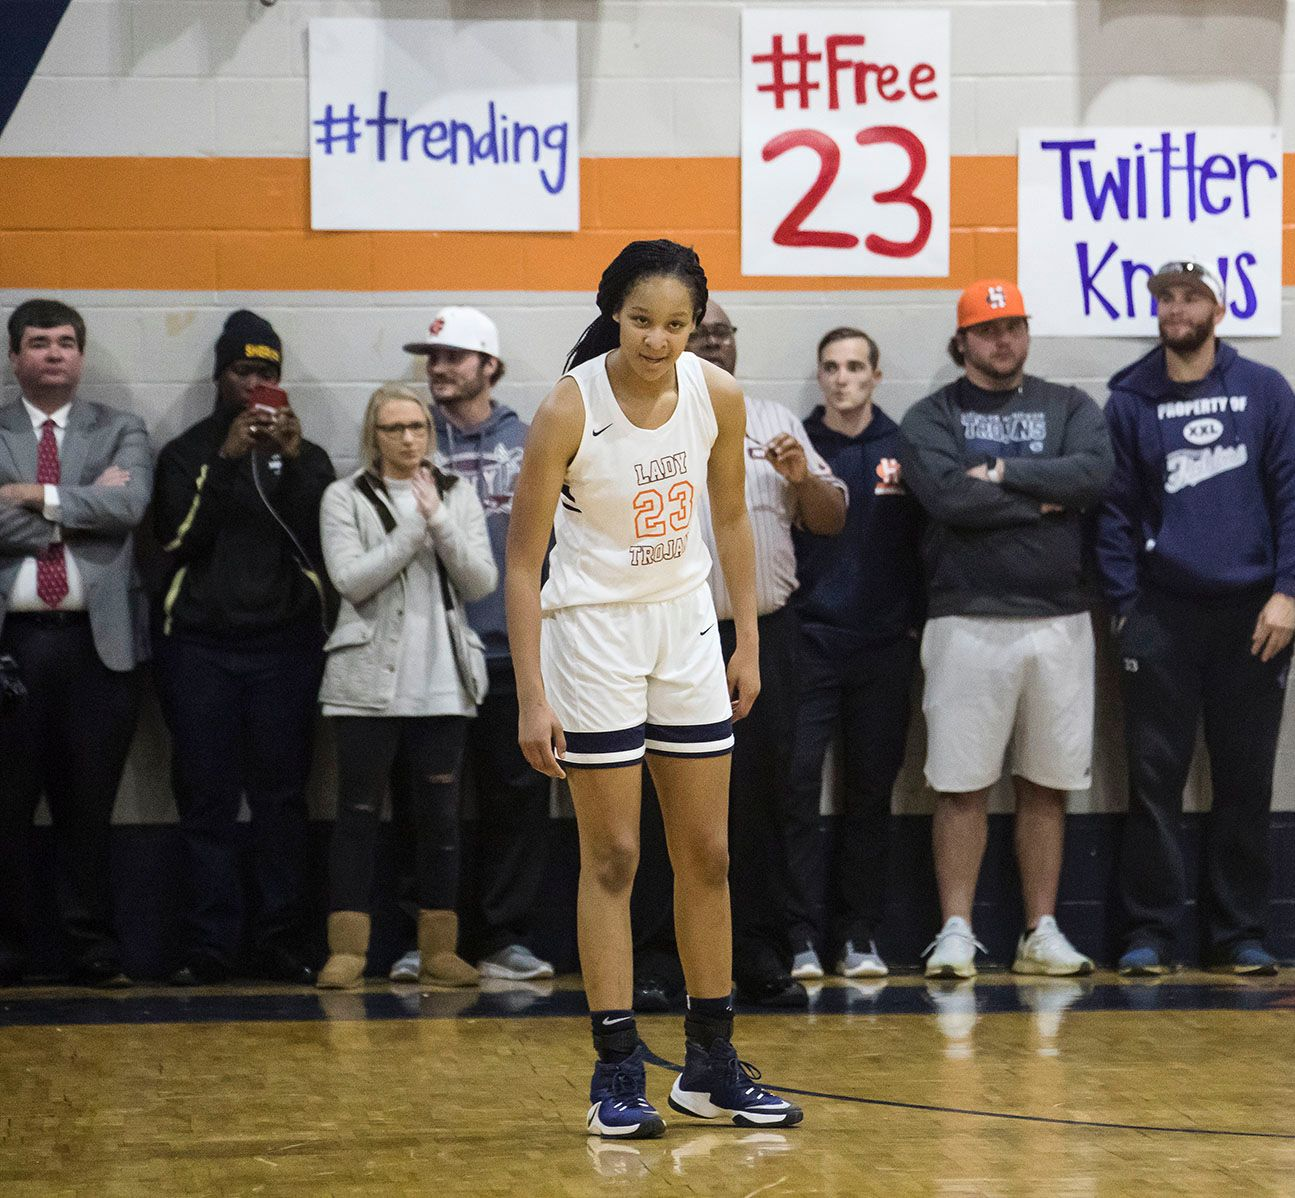 The Charles Henderson gym was packed with both people and signs showing their support for Maori Davenport.